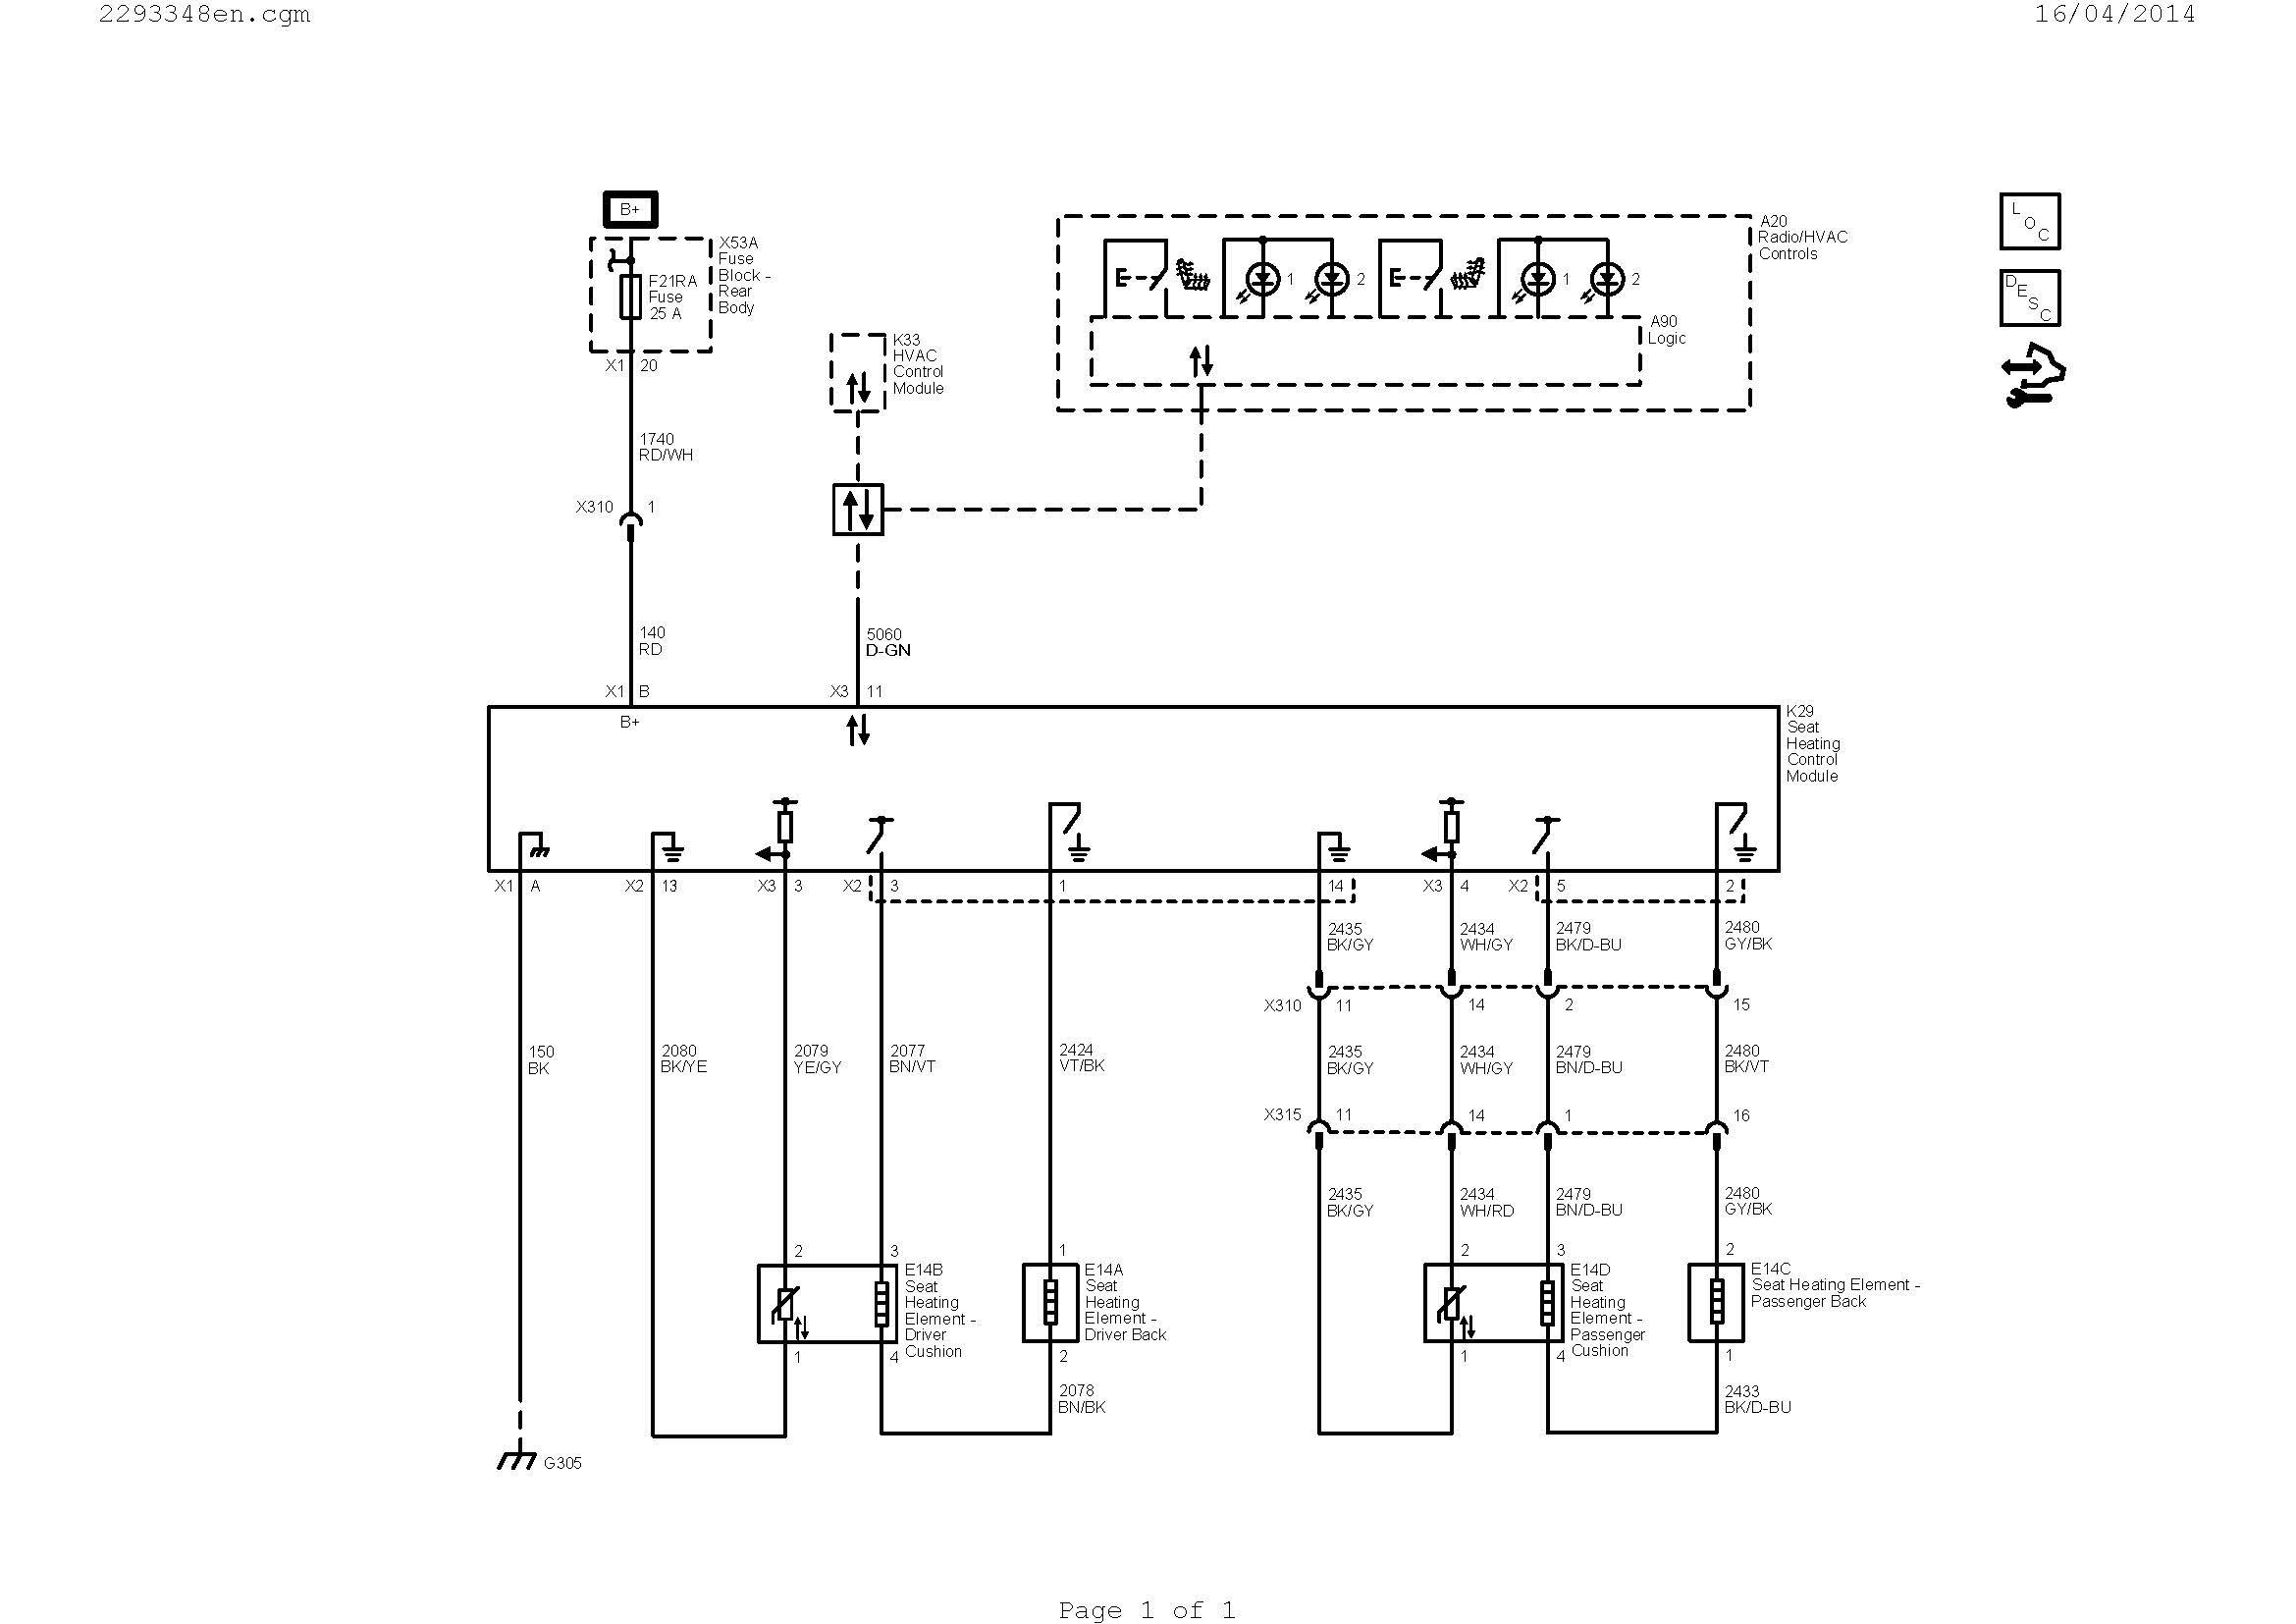 infratech heater wiring diagram Collection-electrical wiring diagram Download Wiring Diagrams for Electrical New Wiring Diagram Guitar Fresh Hvac Diagram DOWNLOAD Wiring Diagram 7-b